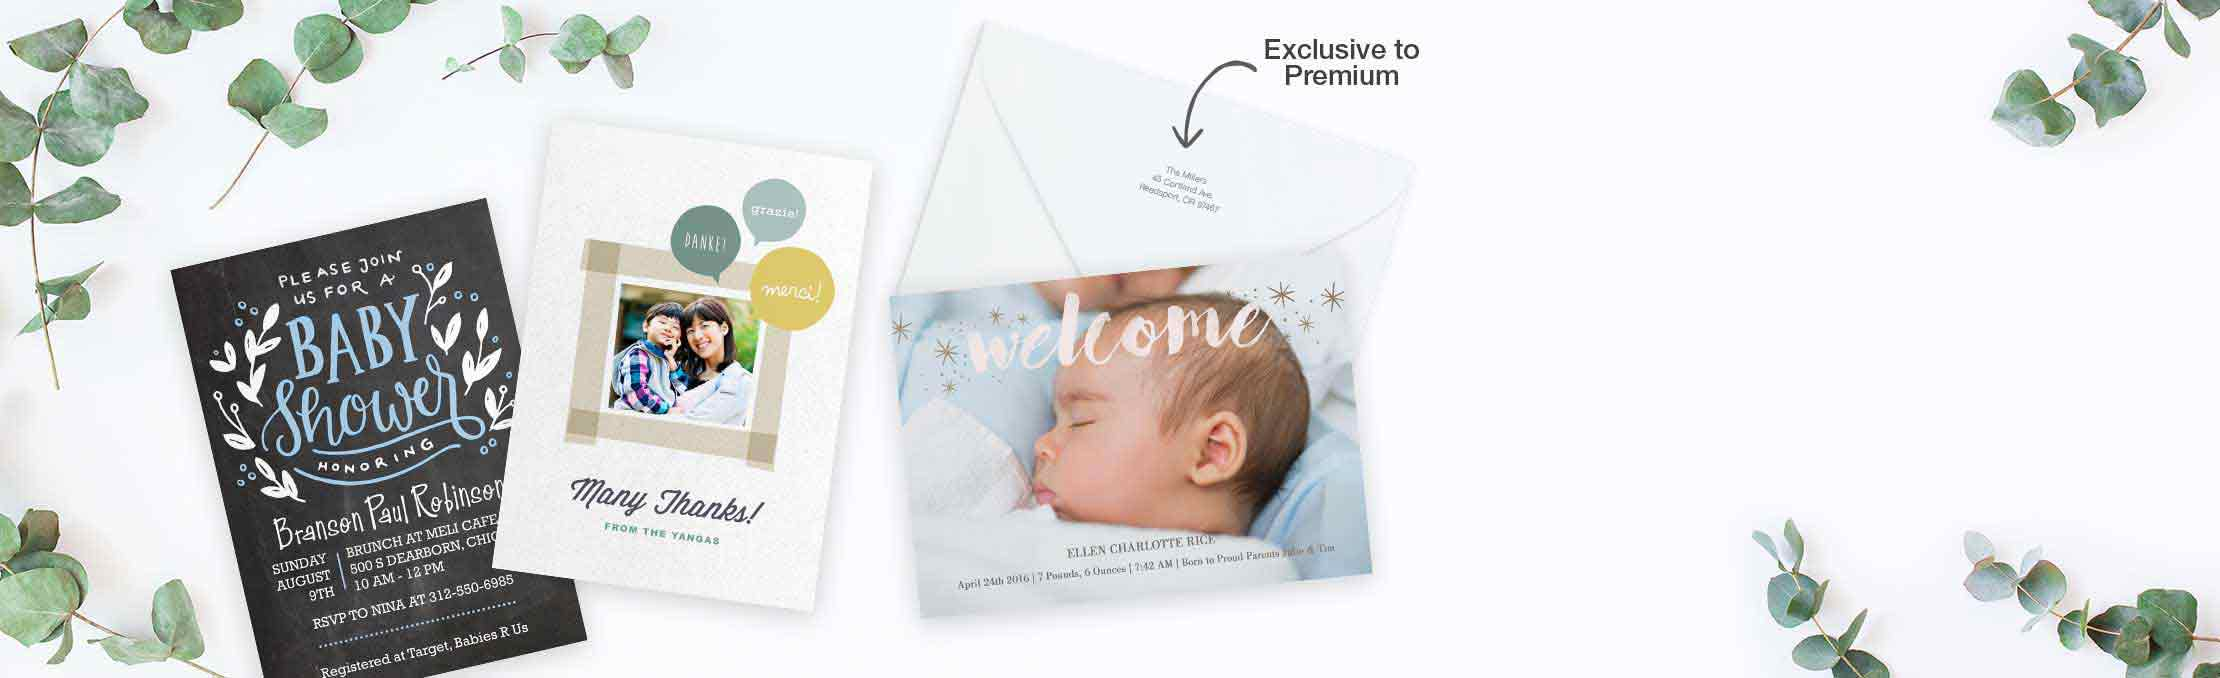 NEW! Premium Cards Send a meaningful message on our thickest cardstock yet. Create now ›